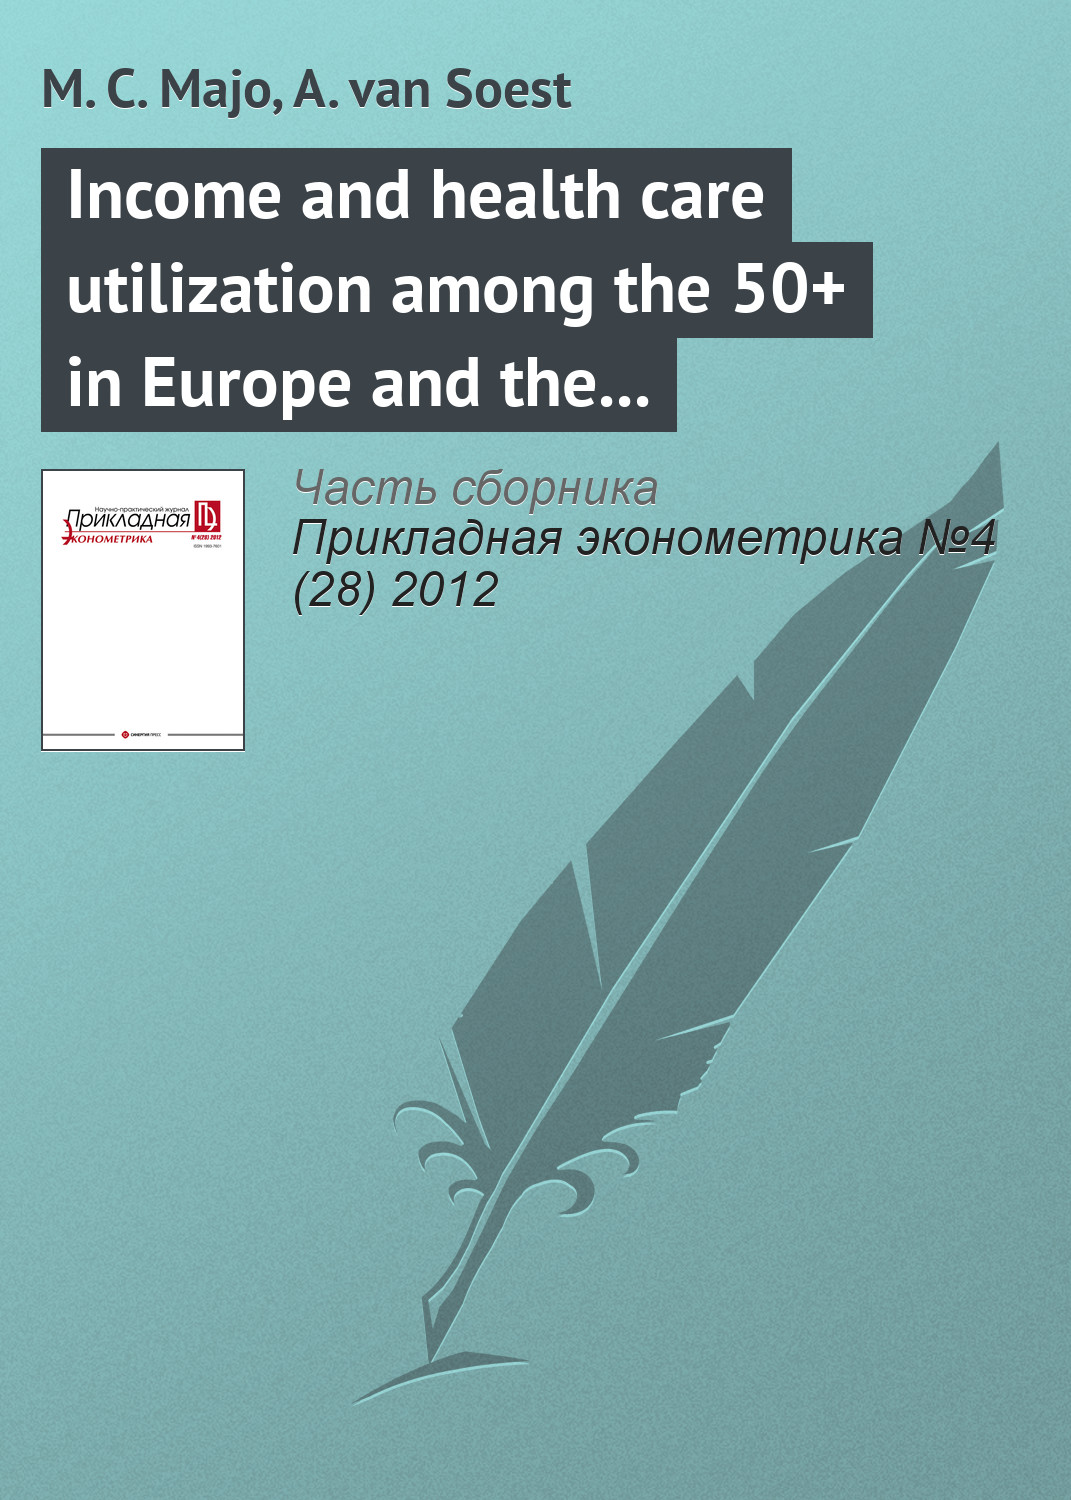 М. С. Majo Income and health care utilization among the 50+ in Europe and the US population policies reconsidered – health empowerment